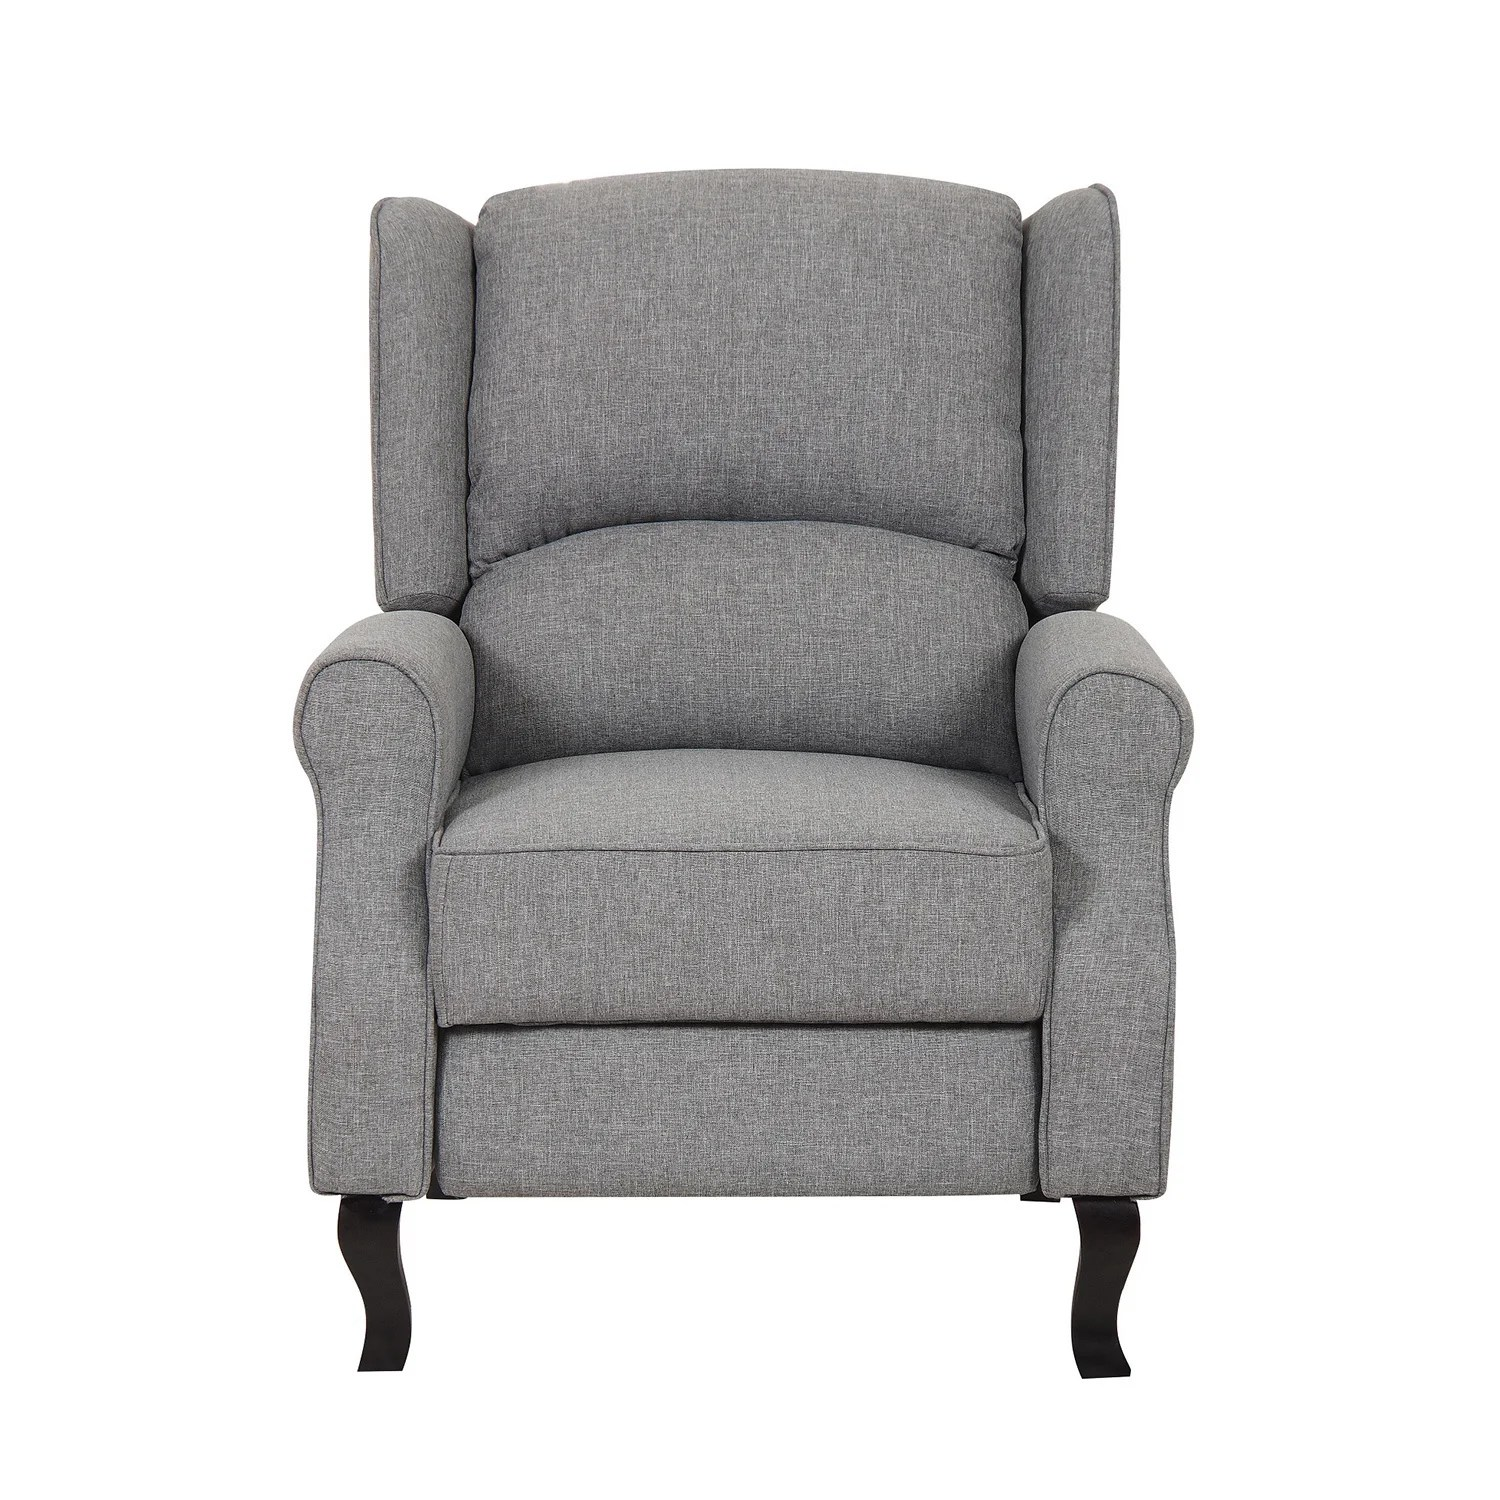 Accent Recliner Chairs 10 Farmhouse Recliners Under 500 My Creative Days